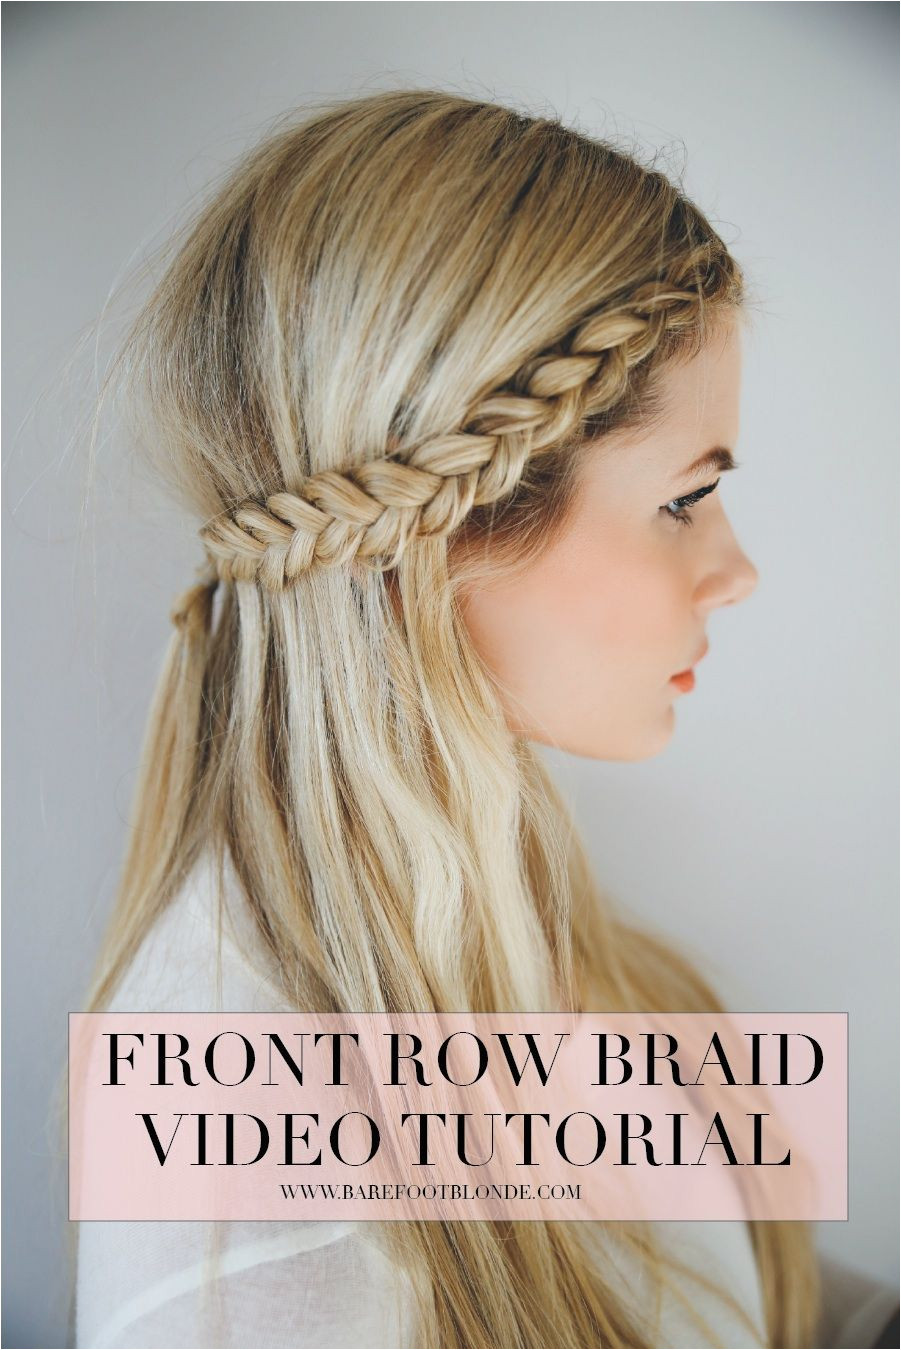 Barefoot Blonde has the best hair tutorials I love this braid